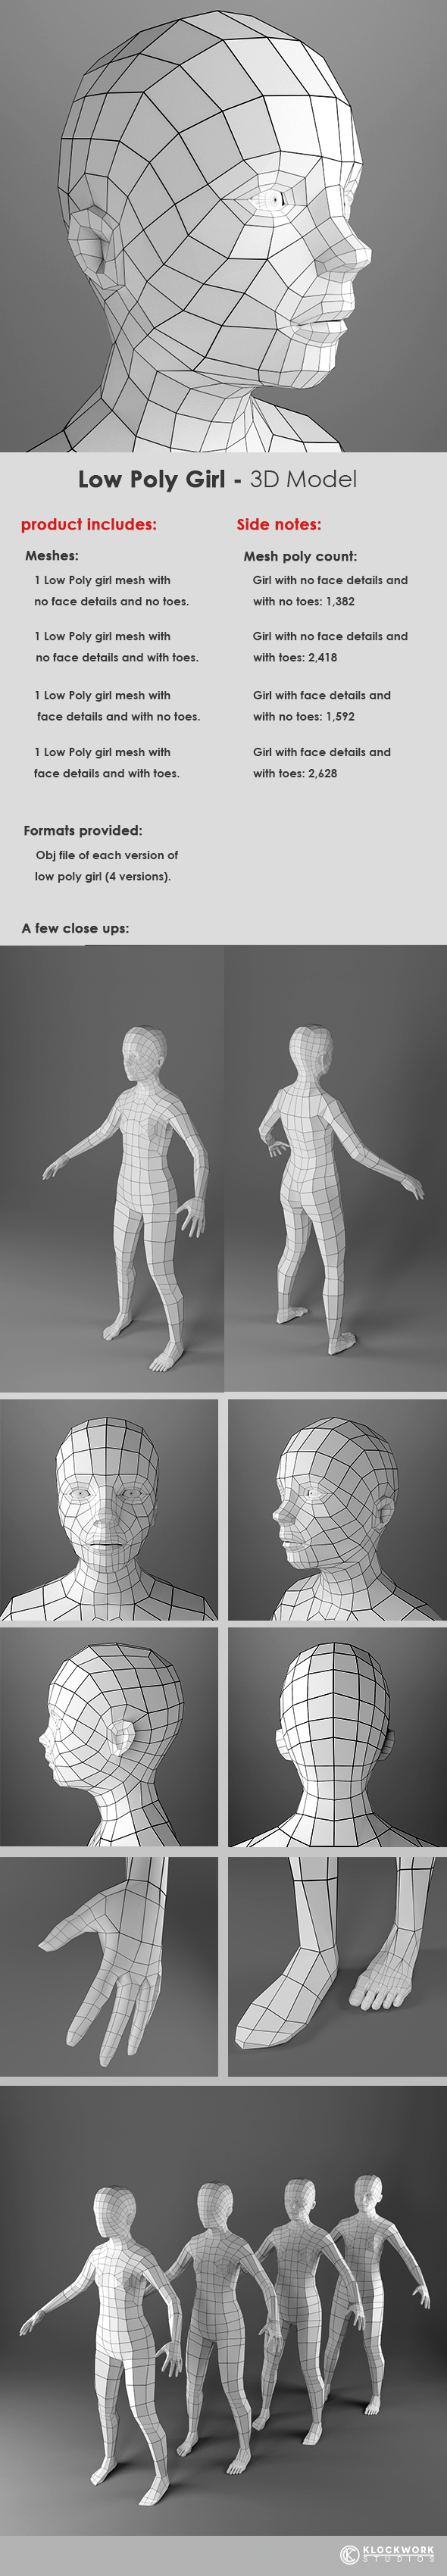 Low Poly Girl Base Mesh - 3DOcean Item for Sale